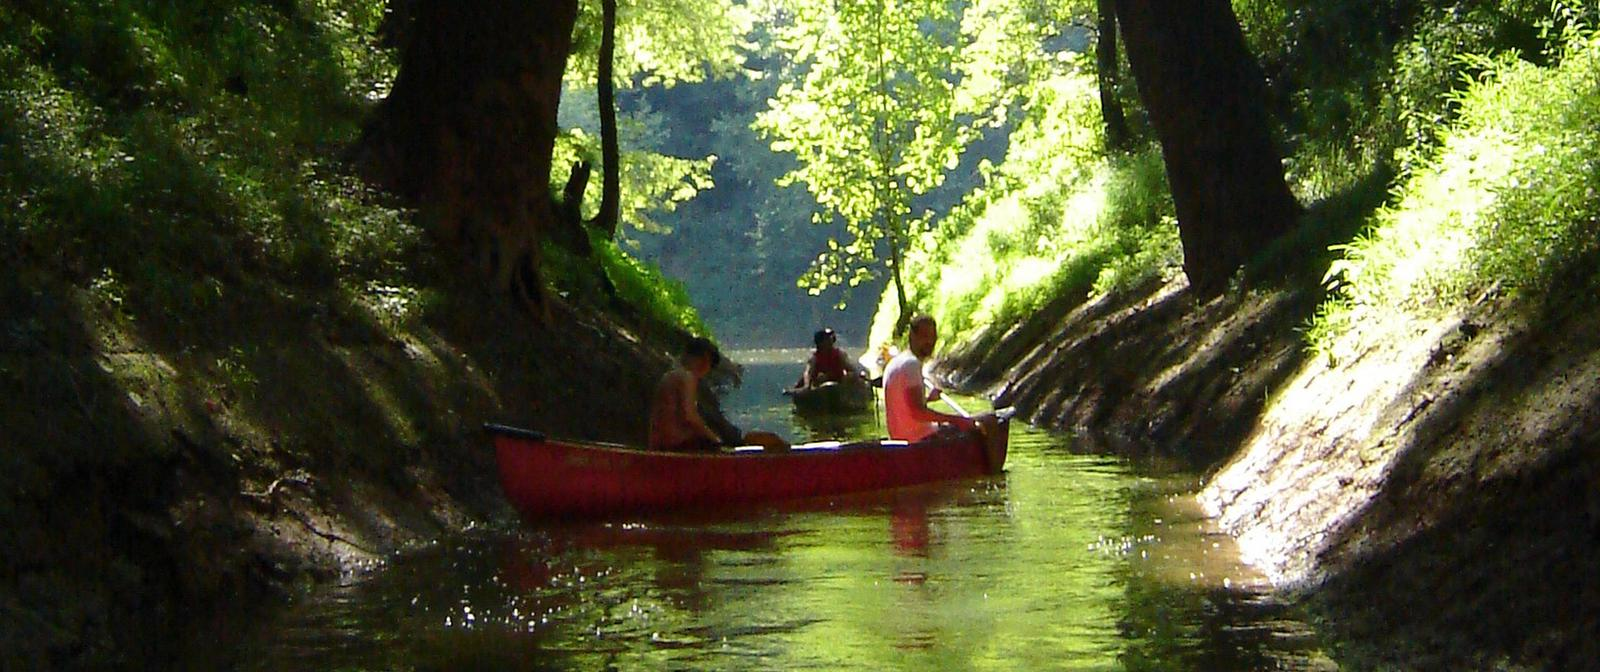 Canoeing the Green River